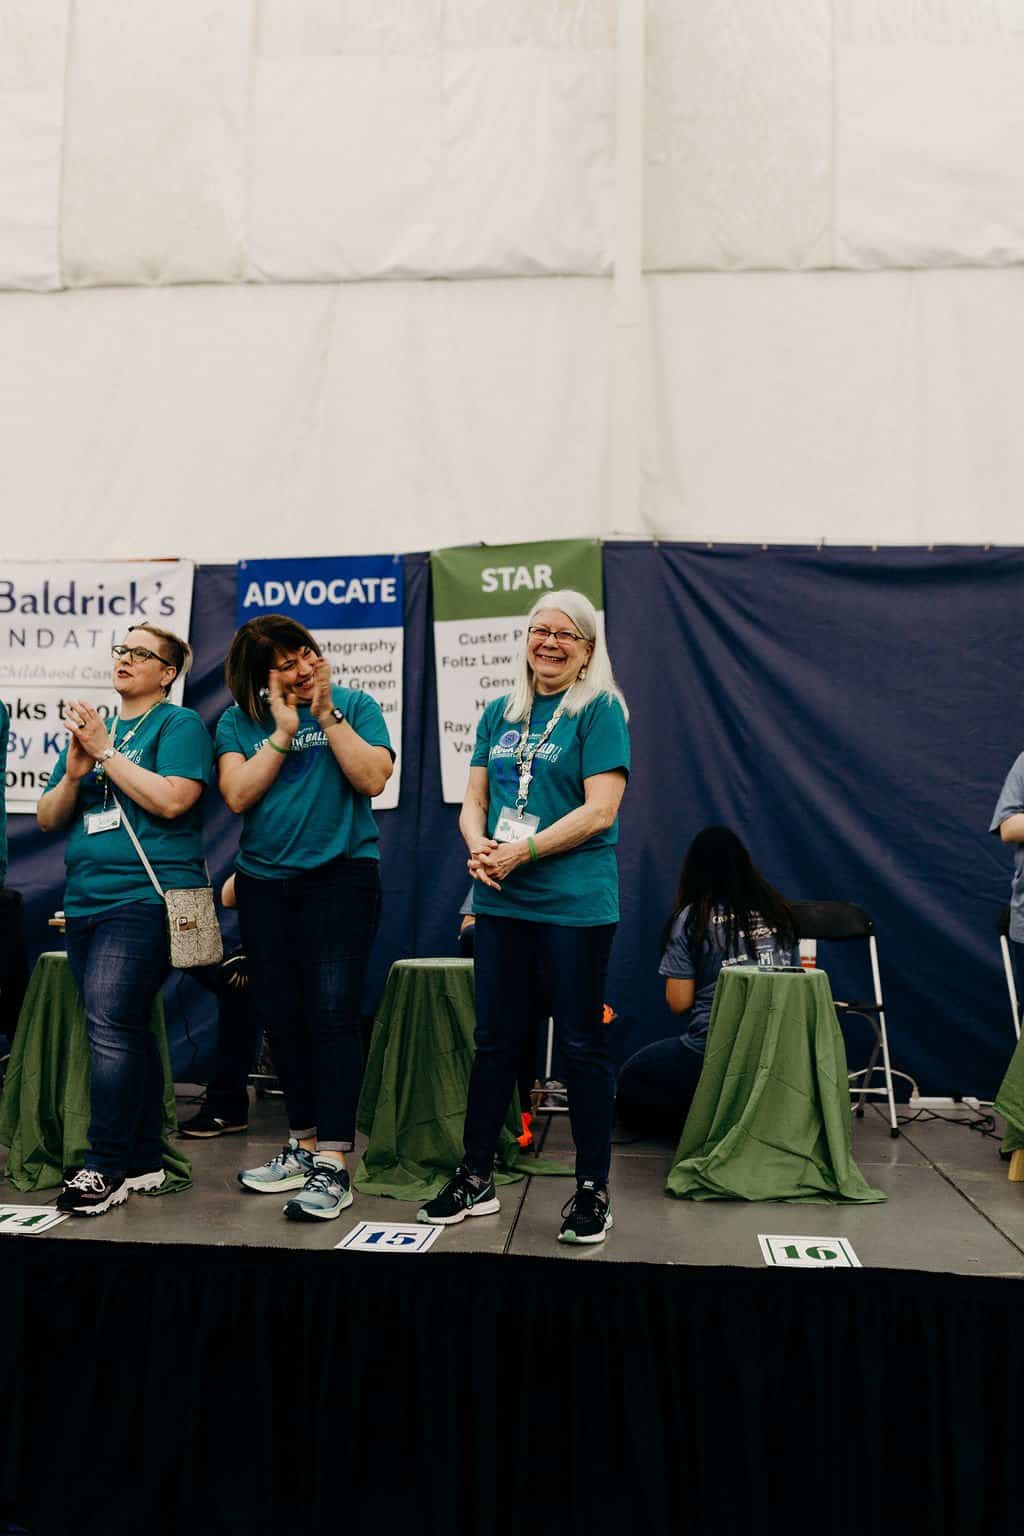 St. Baldricks | I bet you wouldn't shave your head 83